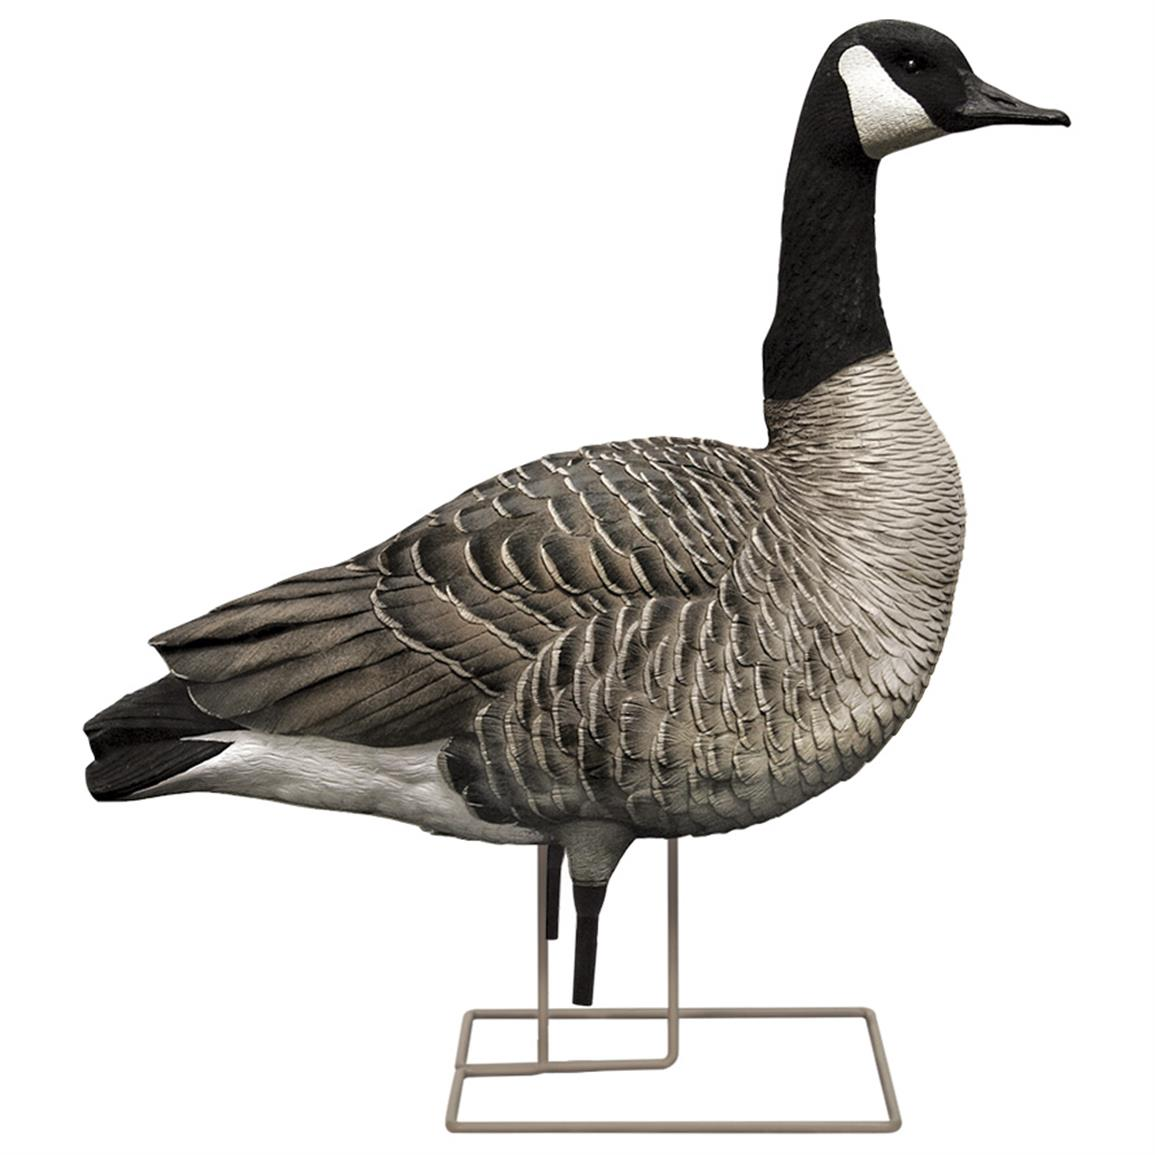 Avian-X Painted Honker Sentry Canada Goose Decoys, 6 pack